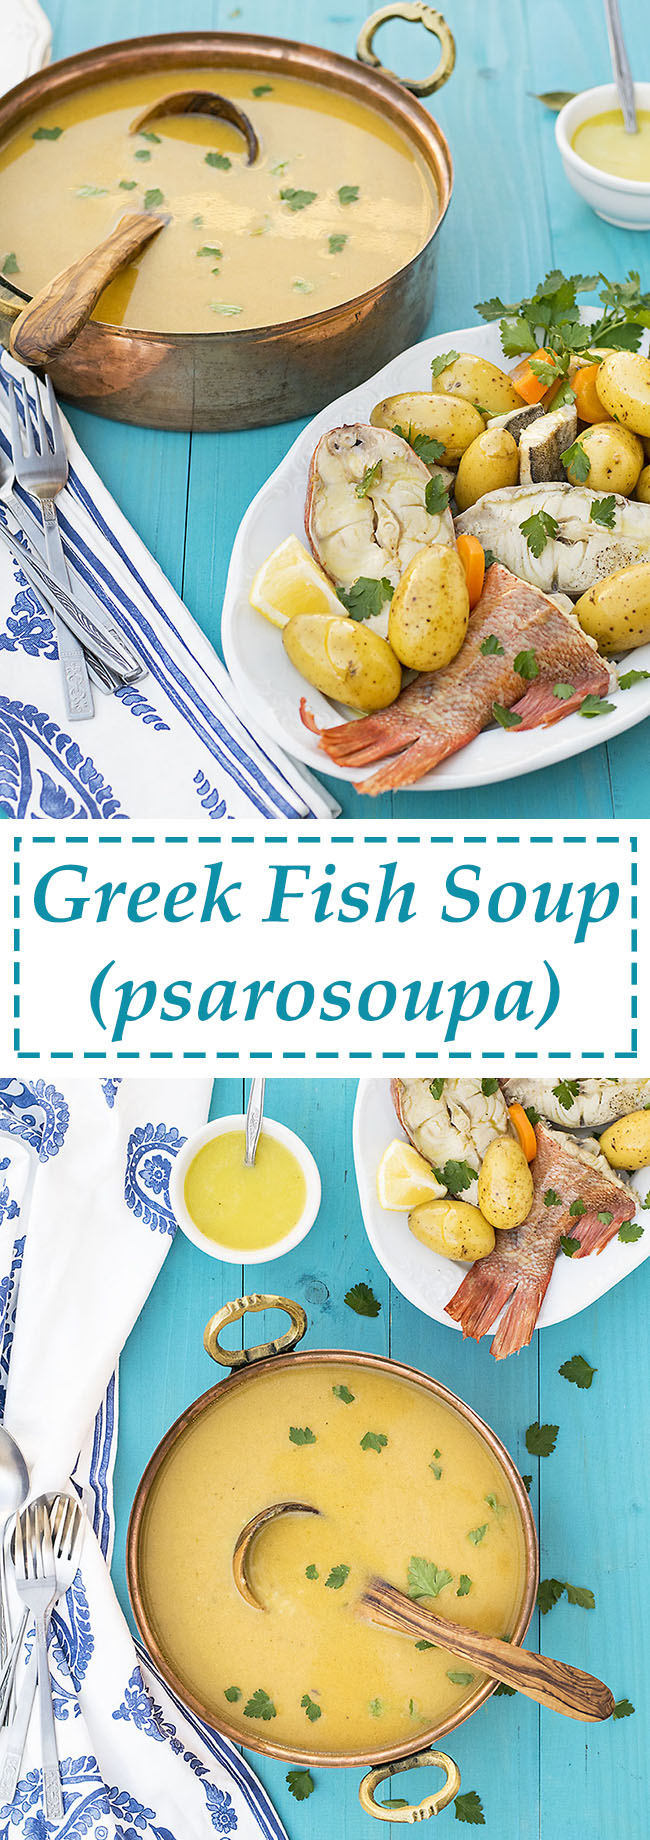 Greek fish soup with potatoes & vegetables (Psarosoupa) 6